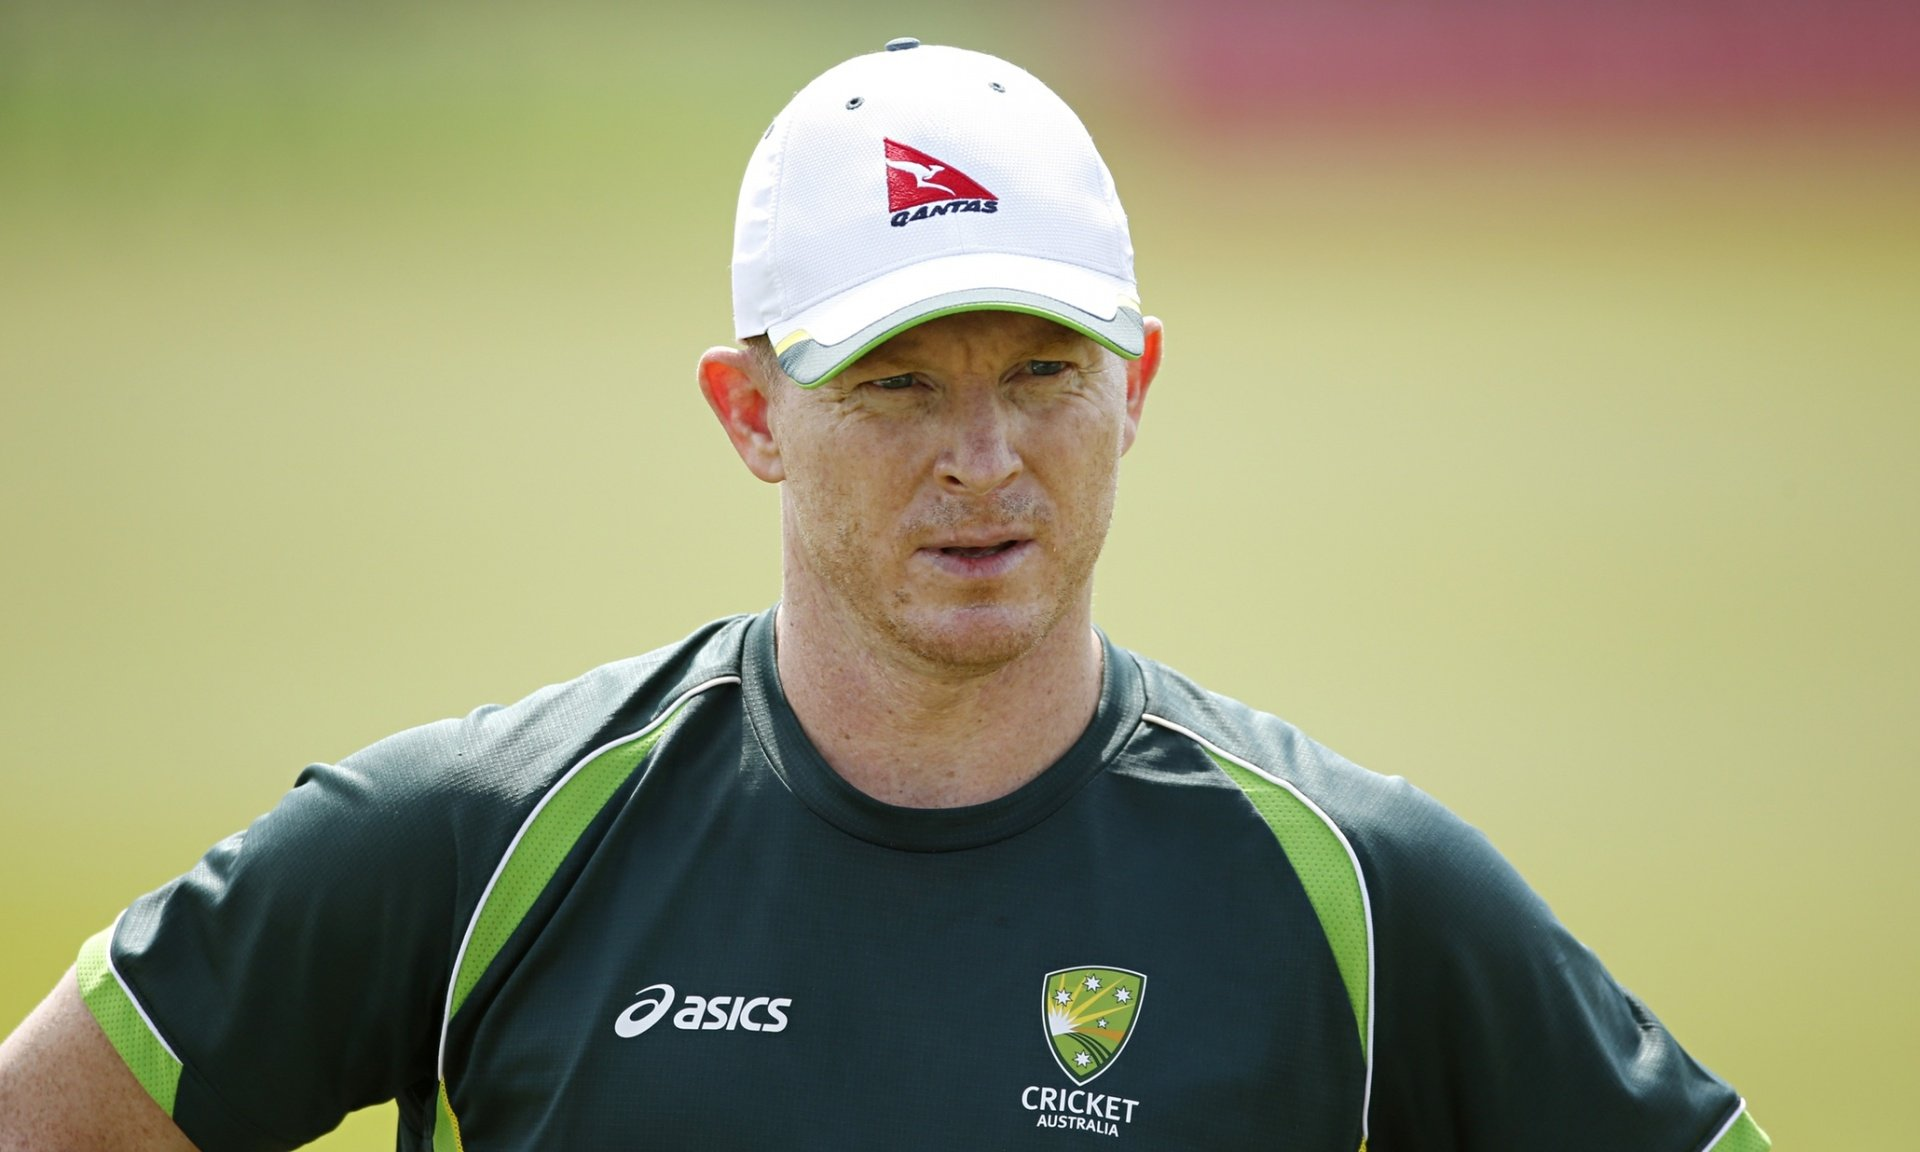 Australia's Chris Rogers apologises for his role in resale of Ashes tickets